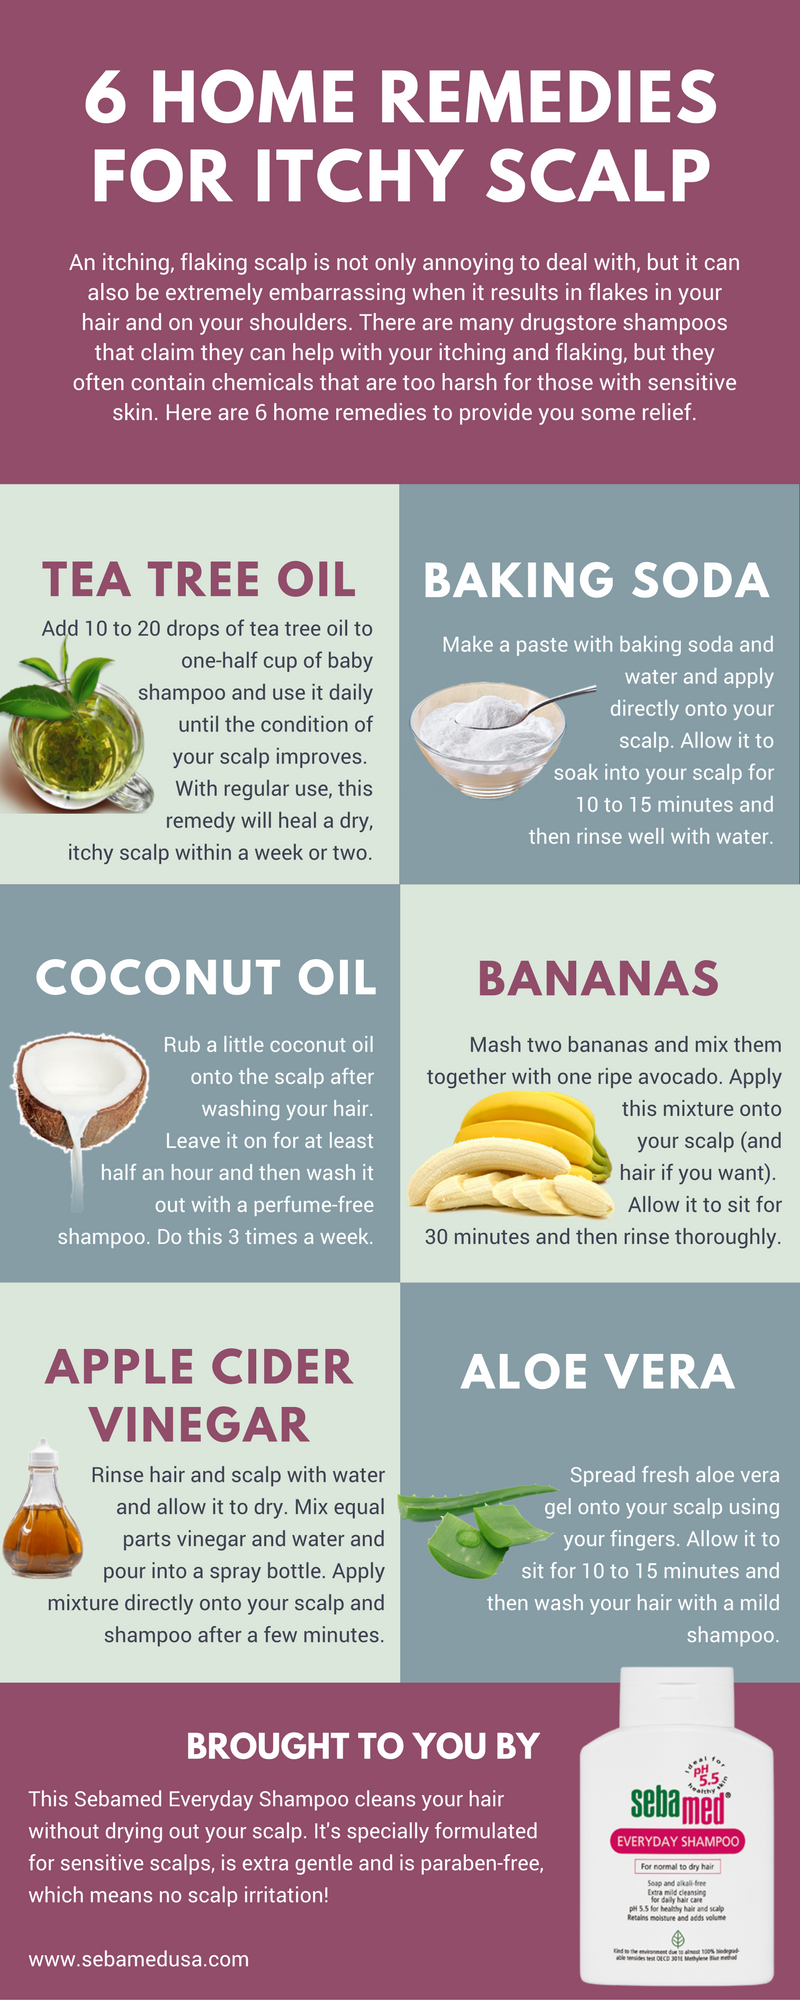 itchy scalp home remedies